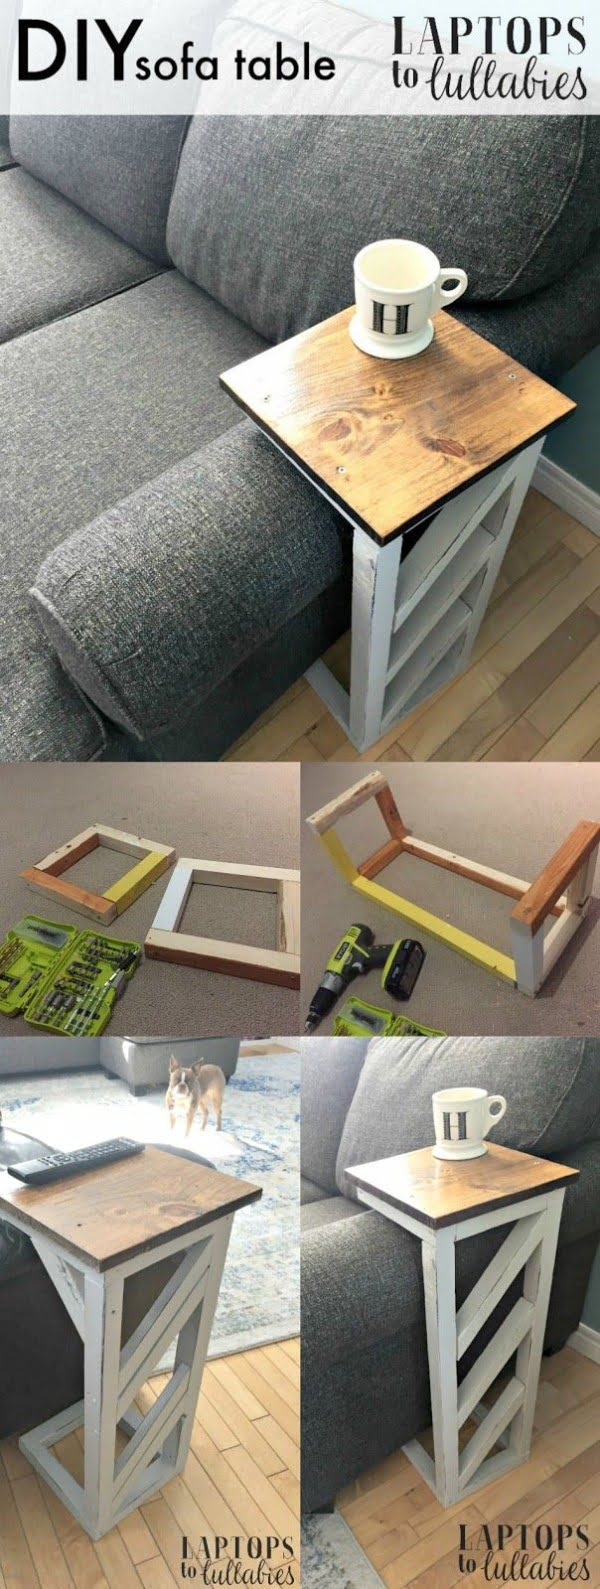 18 Easy DIY Sofa Side Tables You Can Build on a Budget - Check out the tutorial how make an easy DIY sofa side table